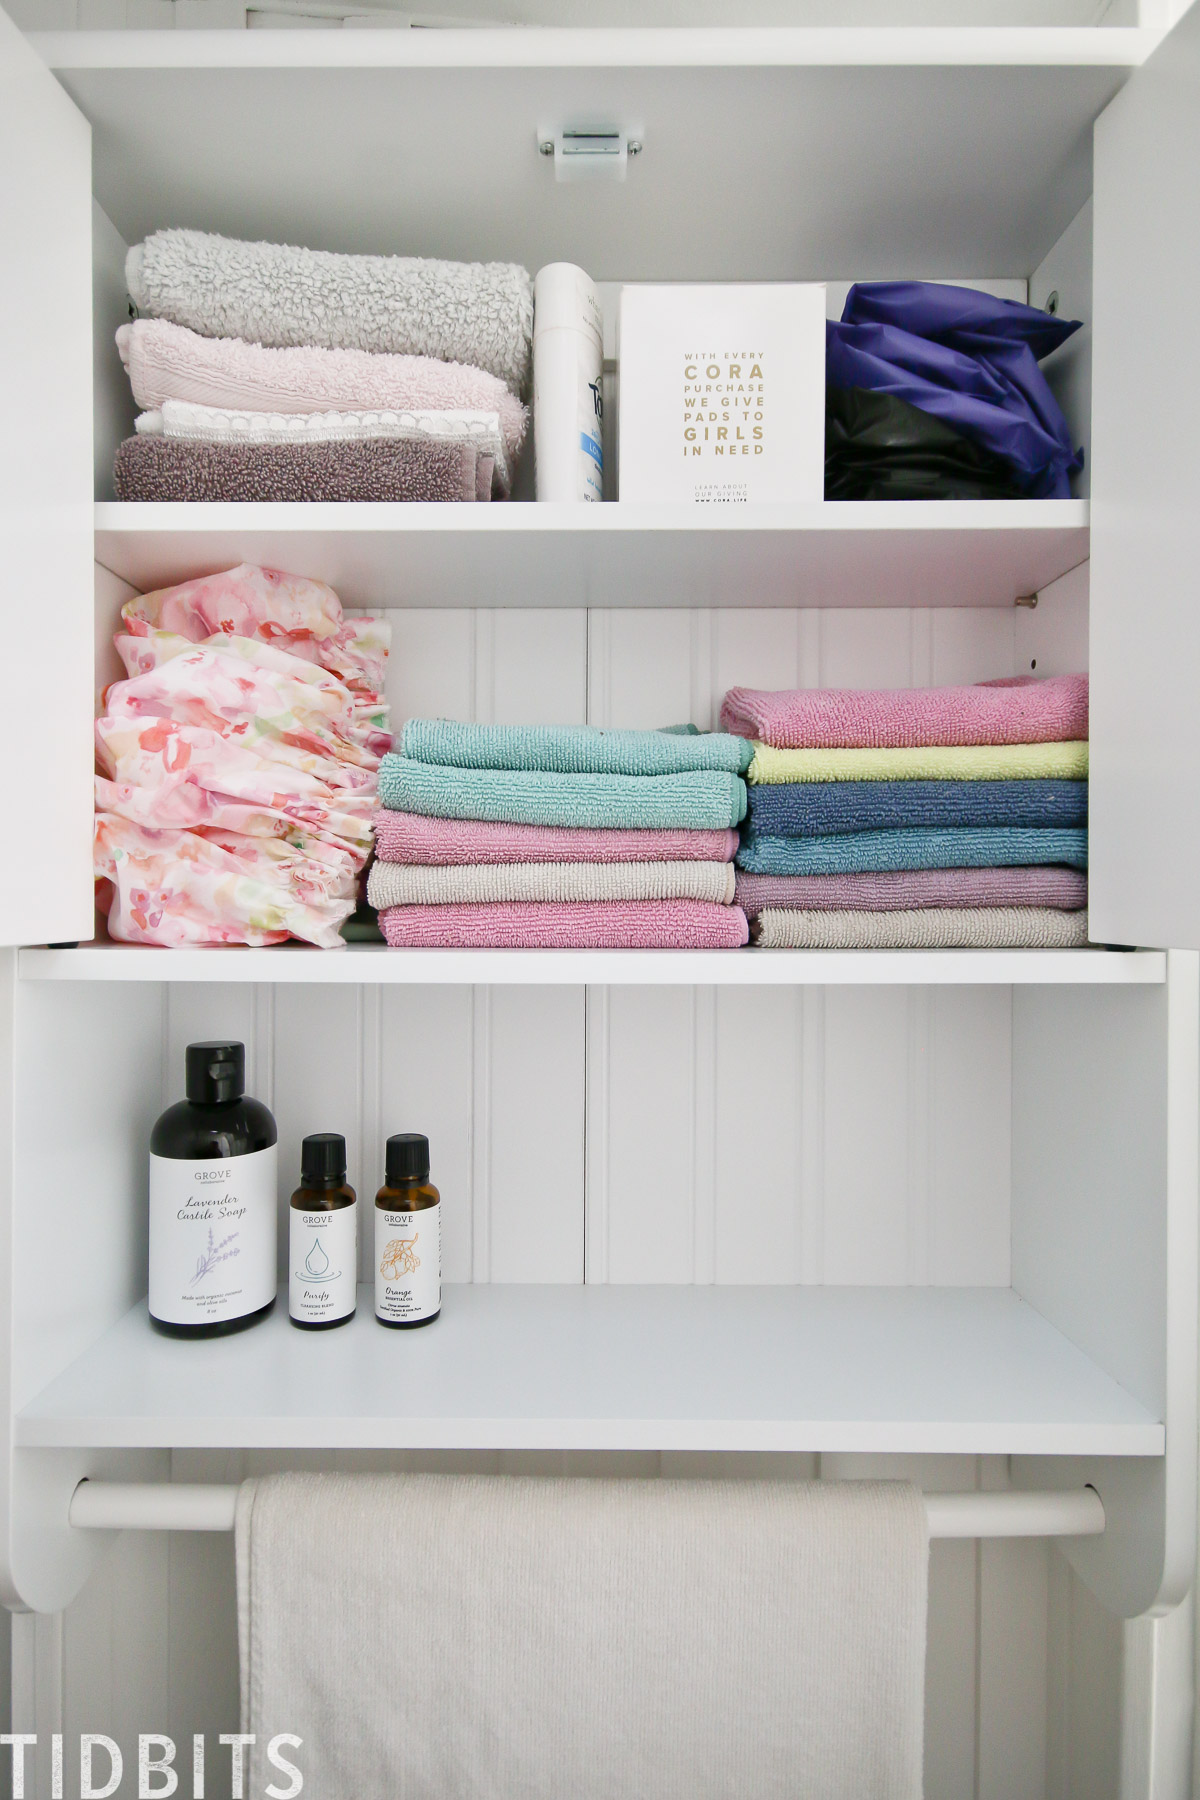 RV bathroom storage and organization